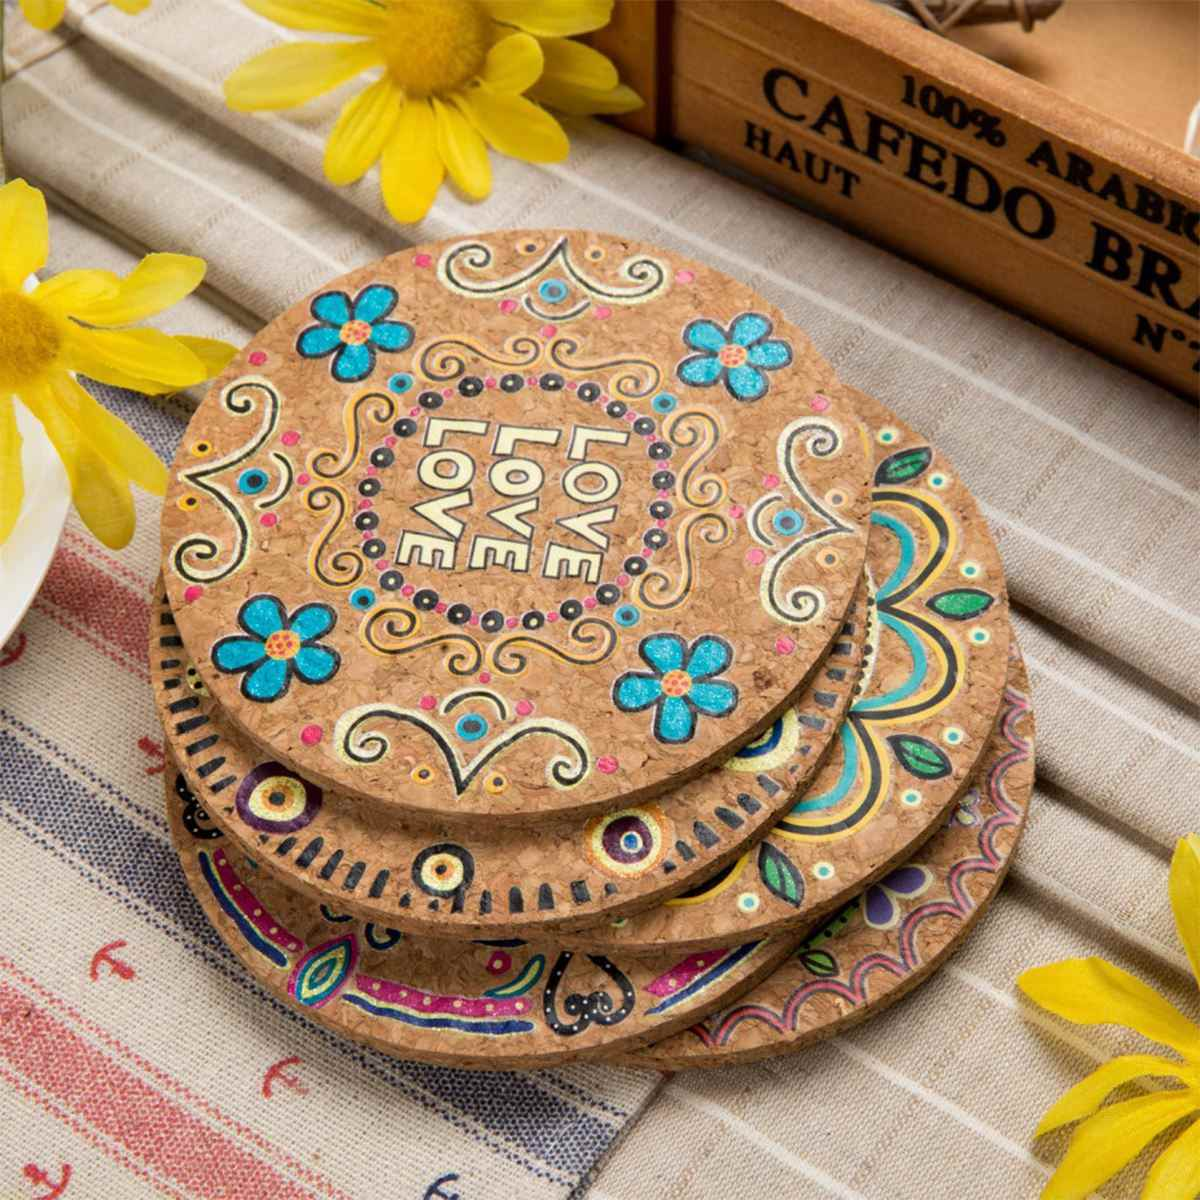 4 Pcs Moisture Resistant Natural Cork Round Cup Coasters Drink Coasters Heat Insulation Patterned Pot Holder Mats for Tabletop